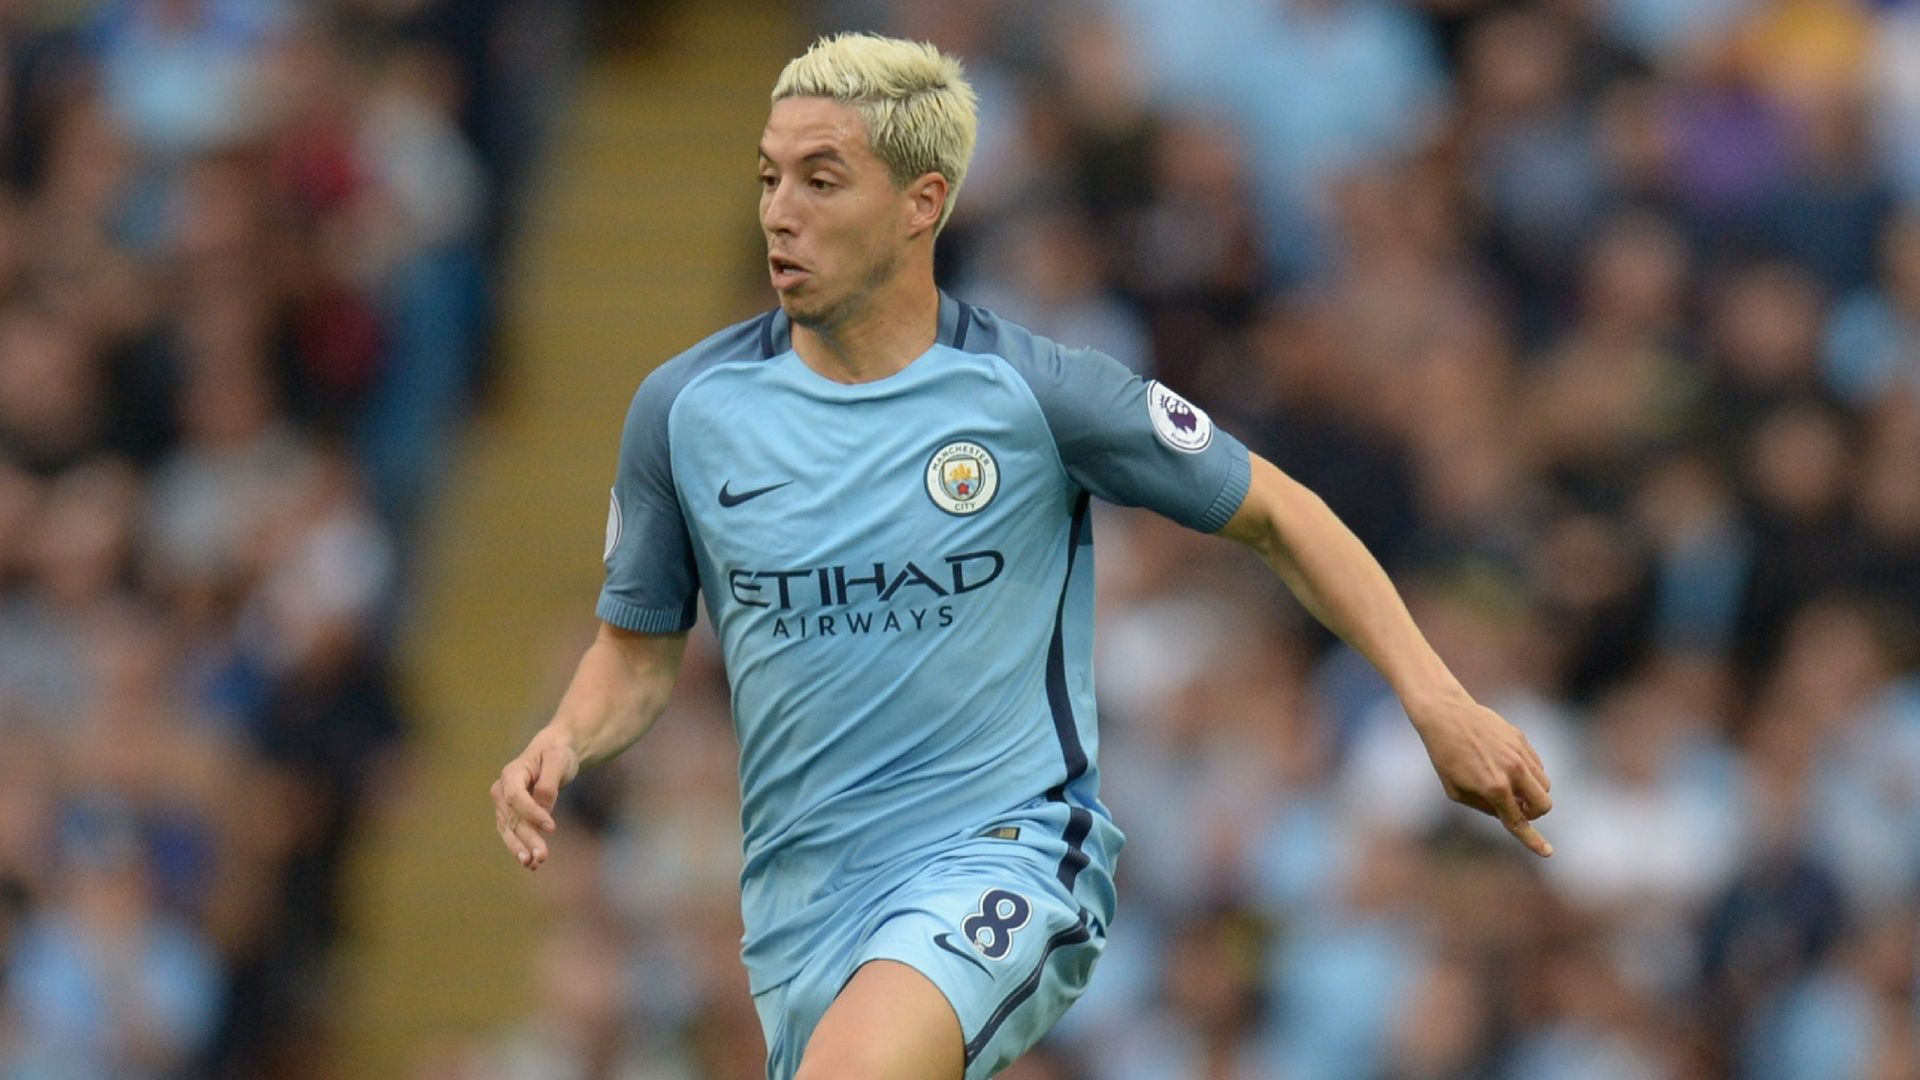 Man City star Samir Nasri lands in Turkey ahead of move